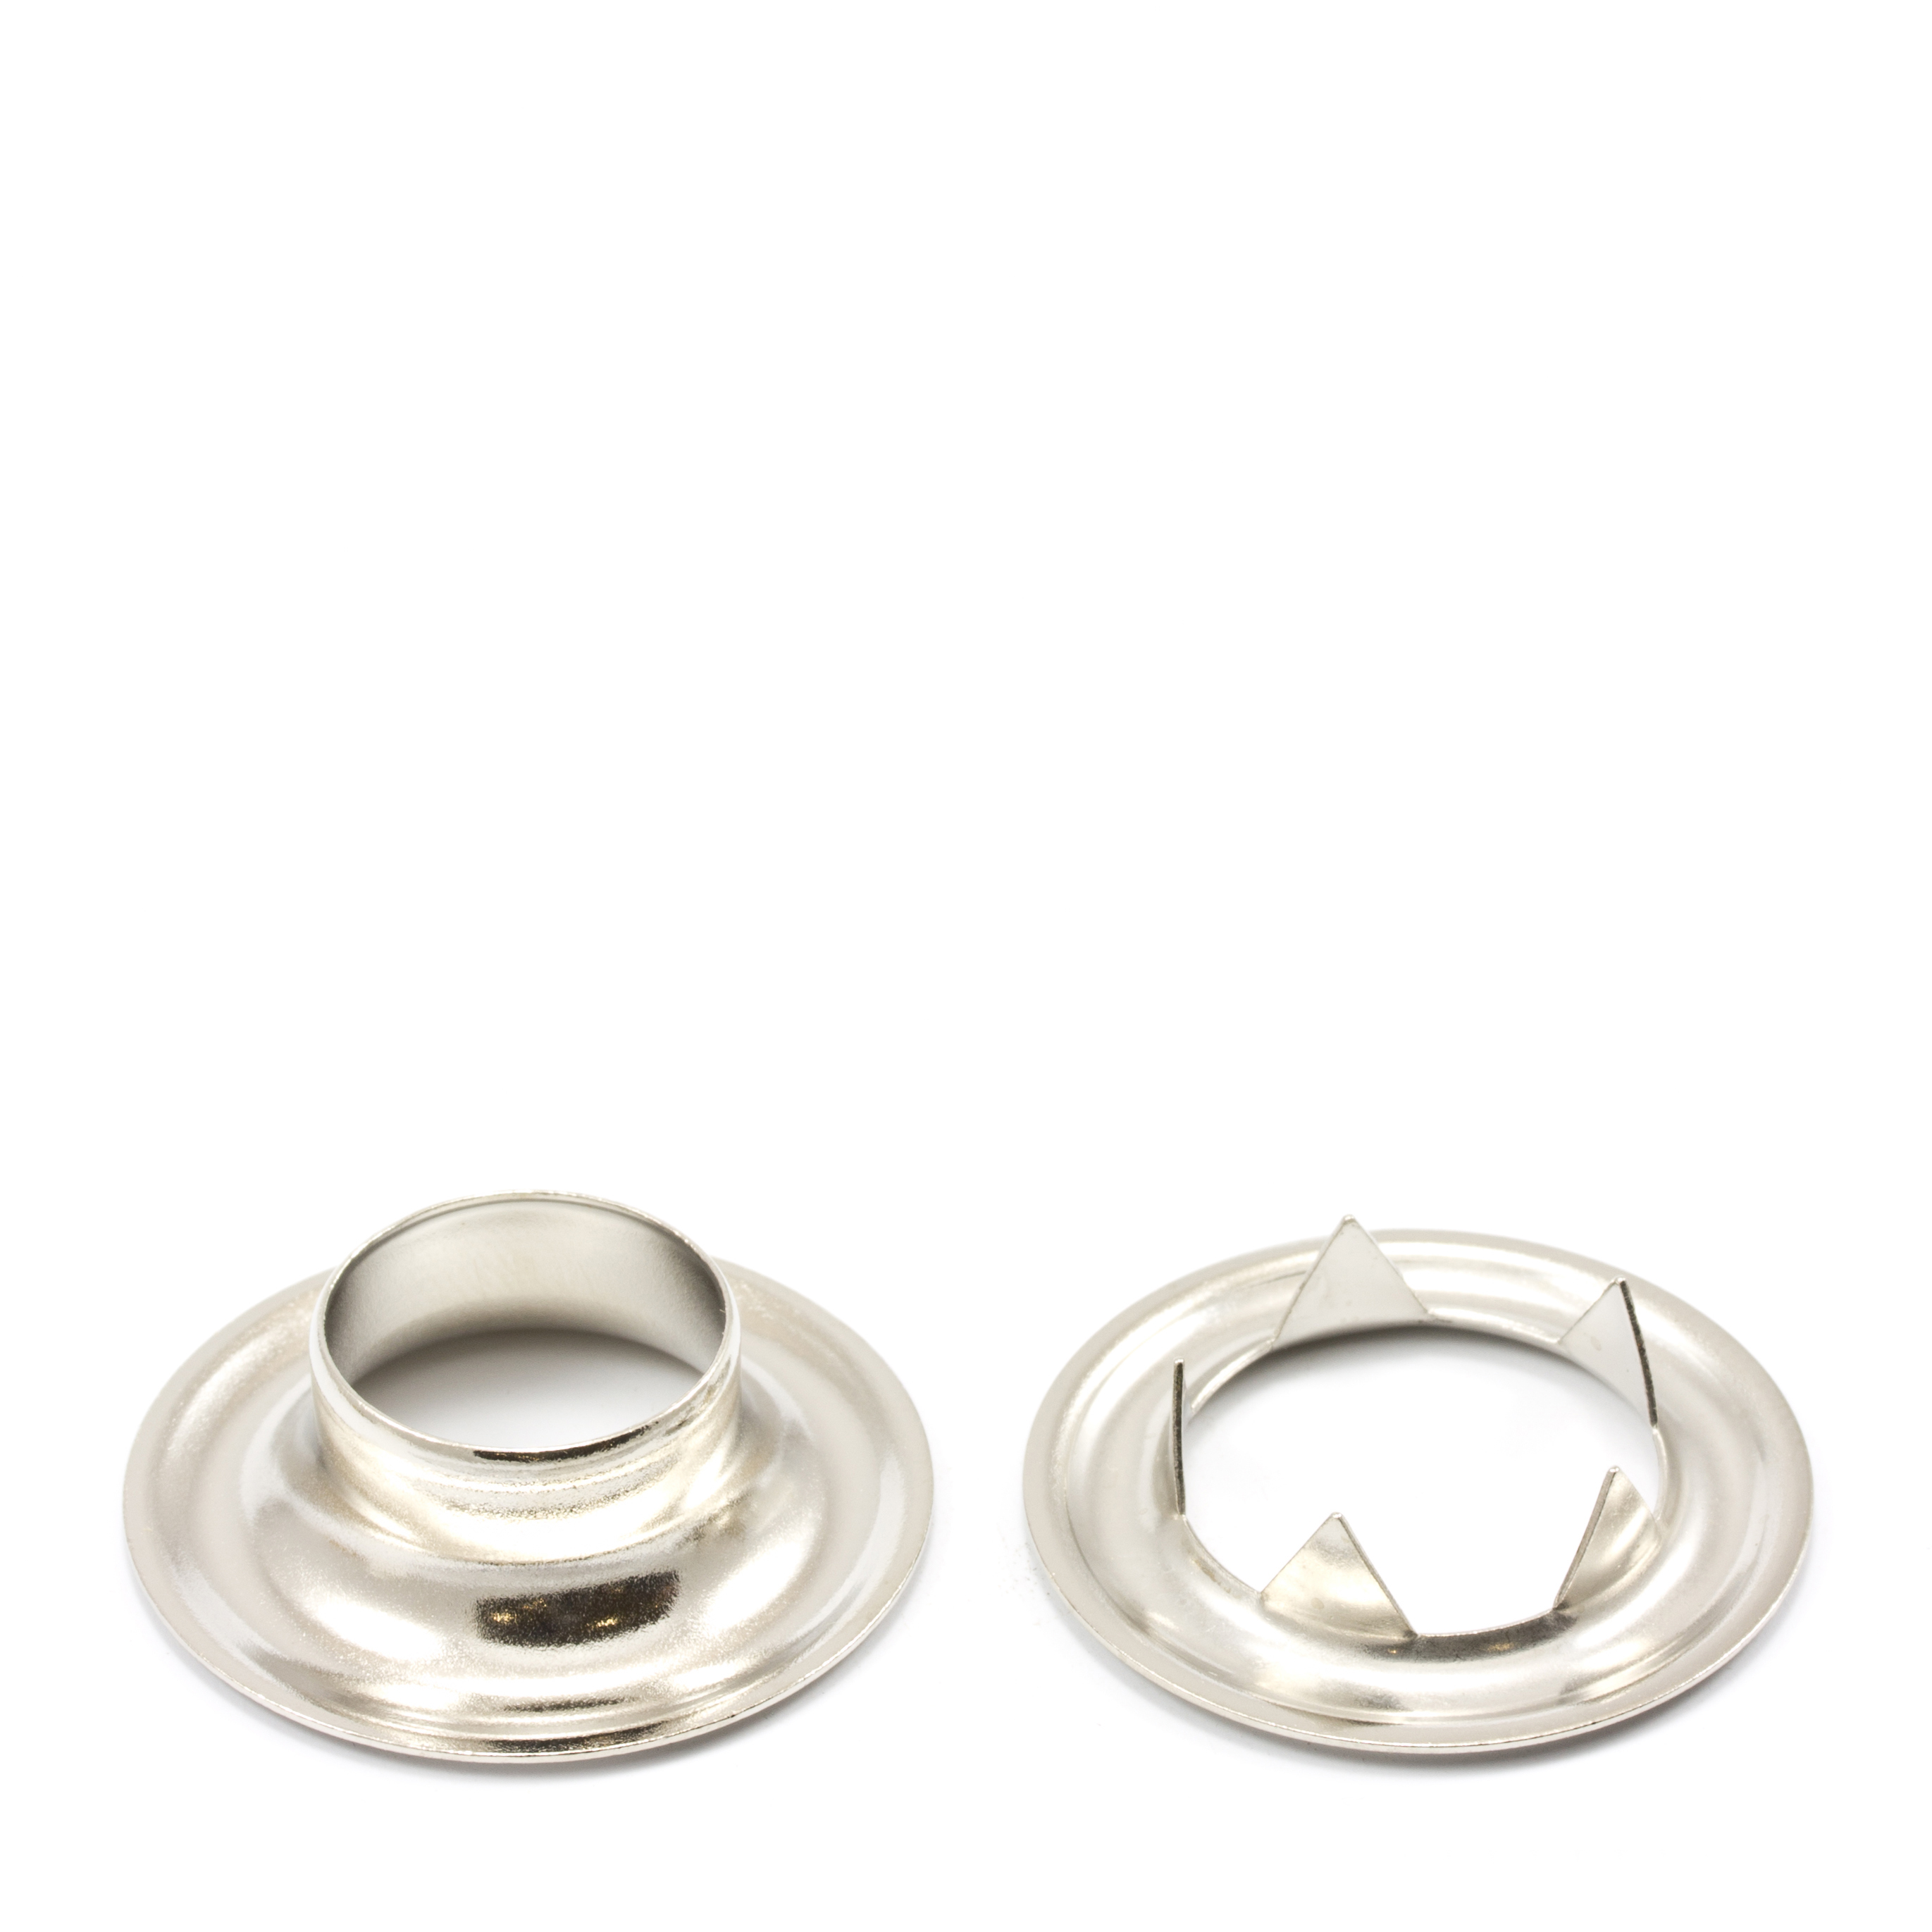 Grommet with Tooth Washer #5 Brass Nickel Plated 5/8